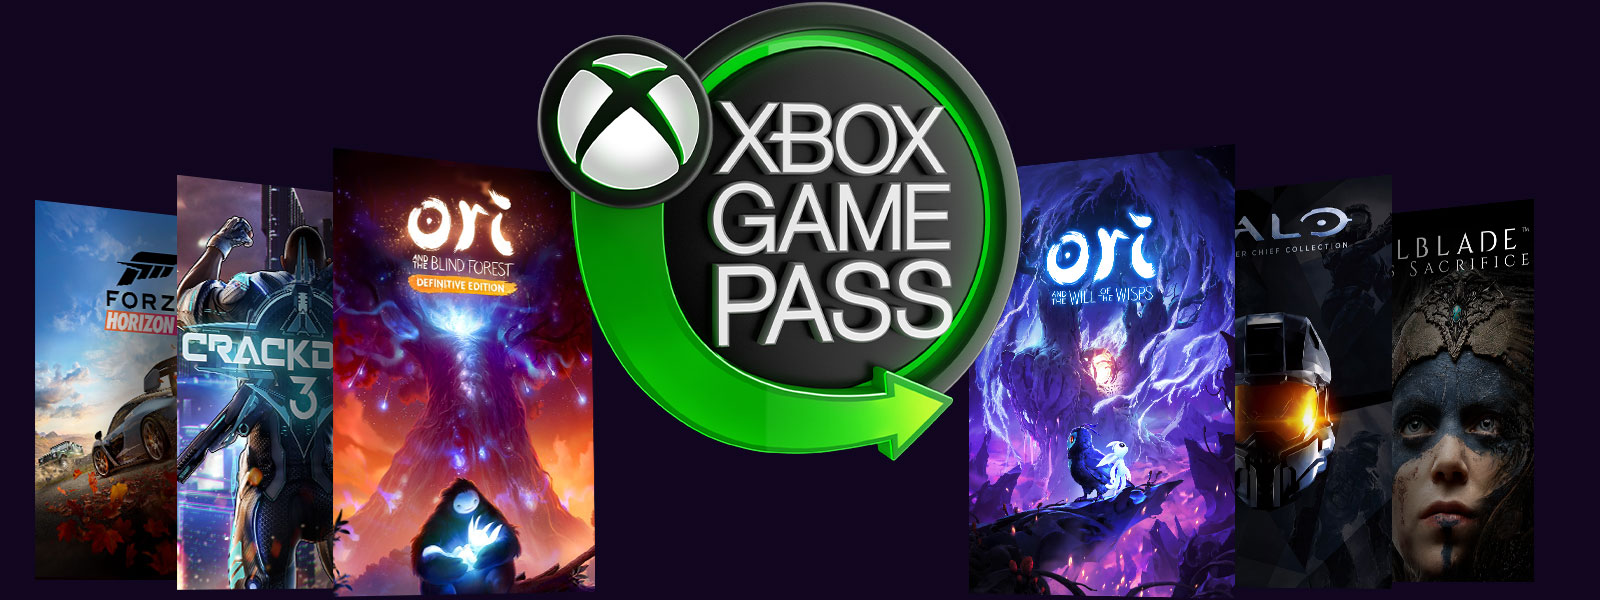 Ori And The Will Of The Wisps Para Xbox One Y Windows 10